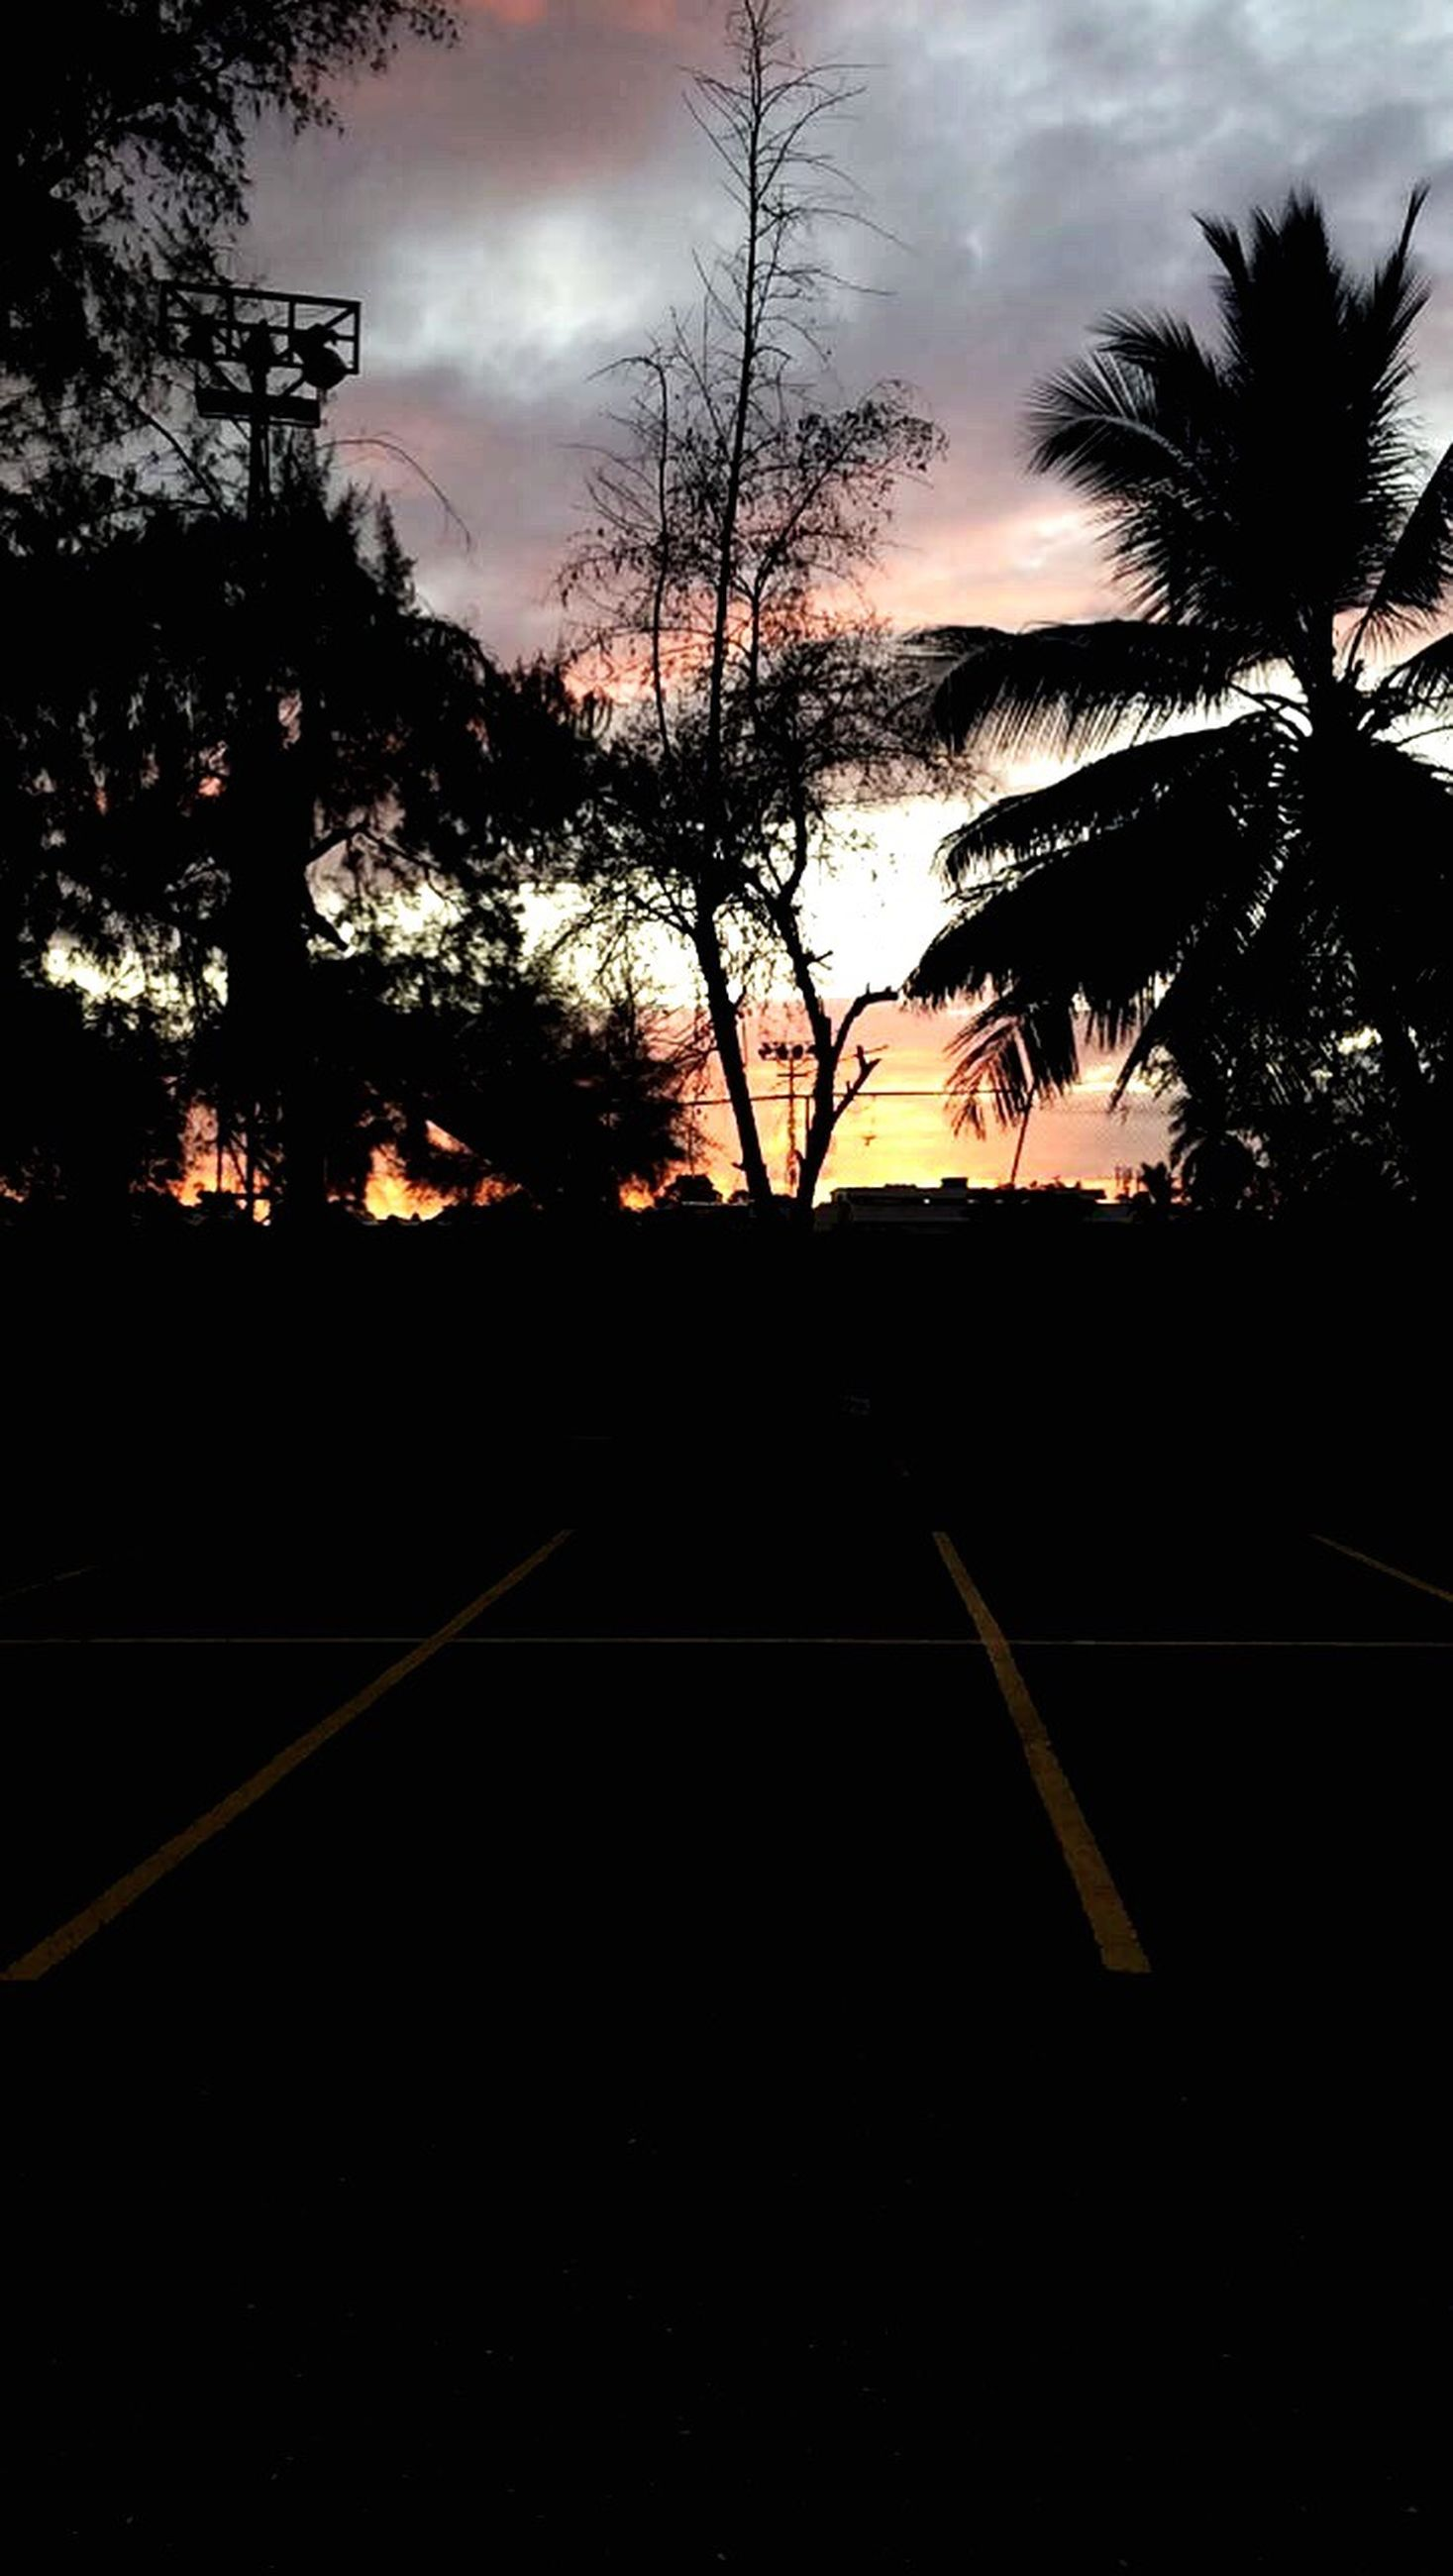 tree, silhouette, sunset, sky, nature, scenics, tranquility, beauty in nature, no people, outdoors, road, palm tree, day